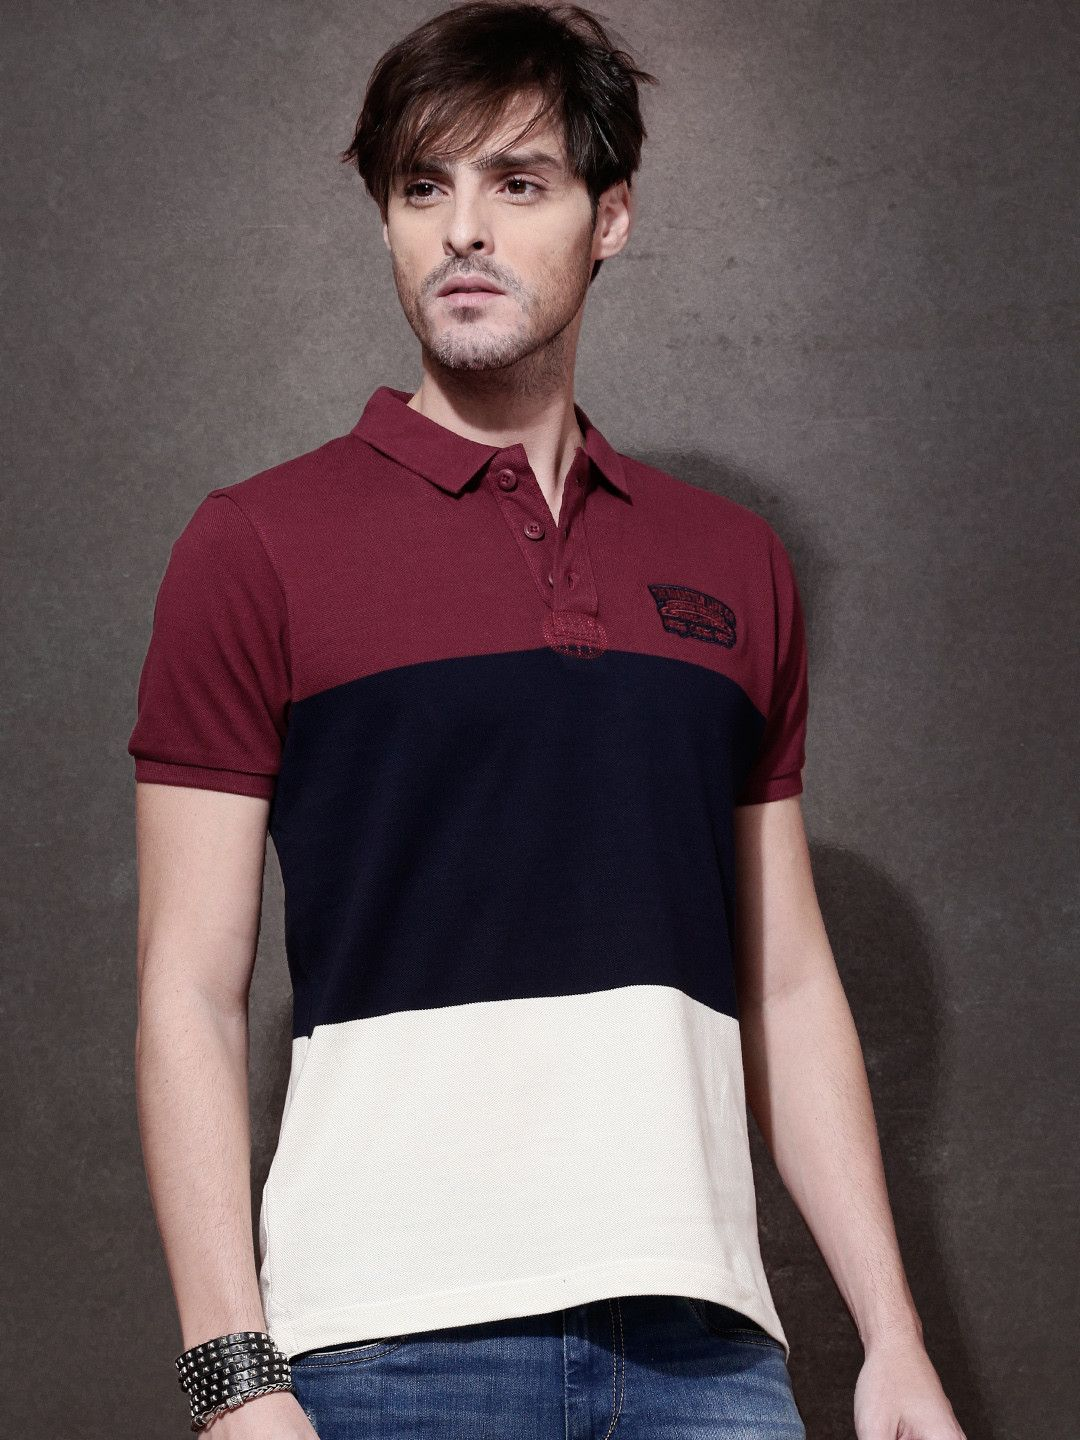 Roadster Maroon Navy Blue Cotton Striped Polo T Shirt Mens T